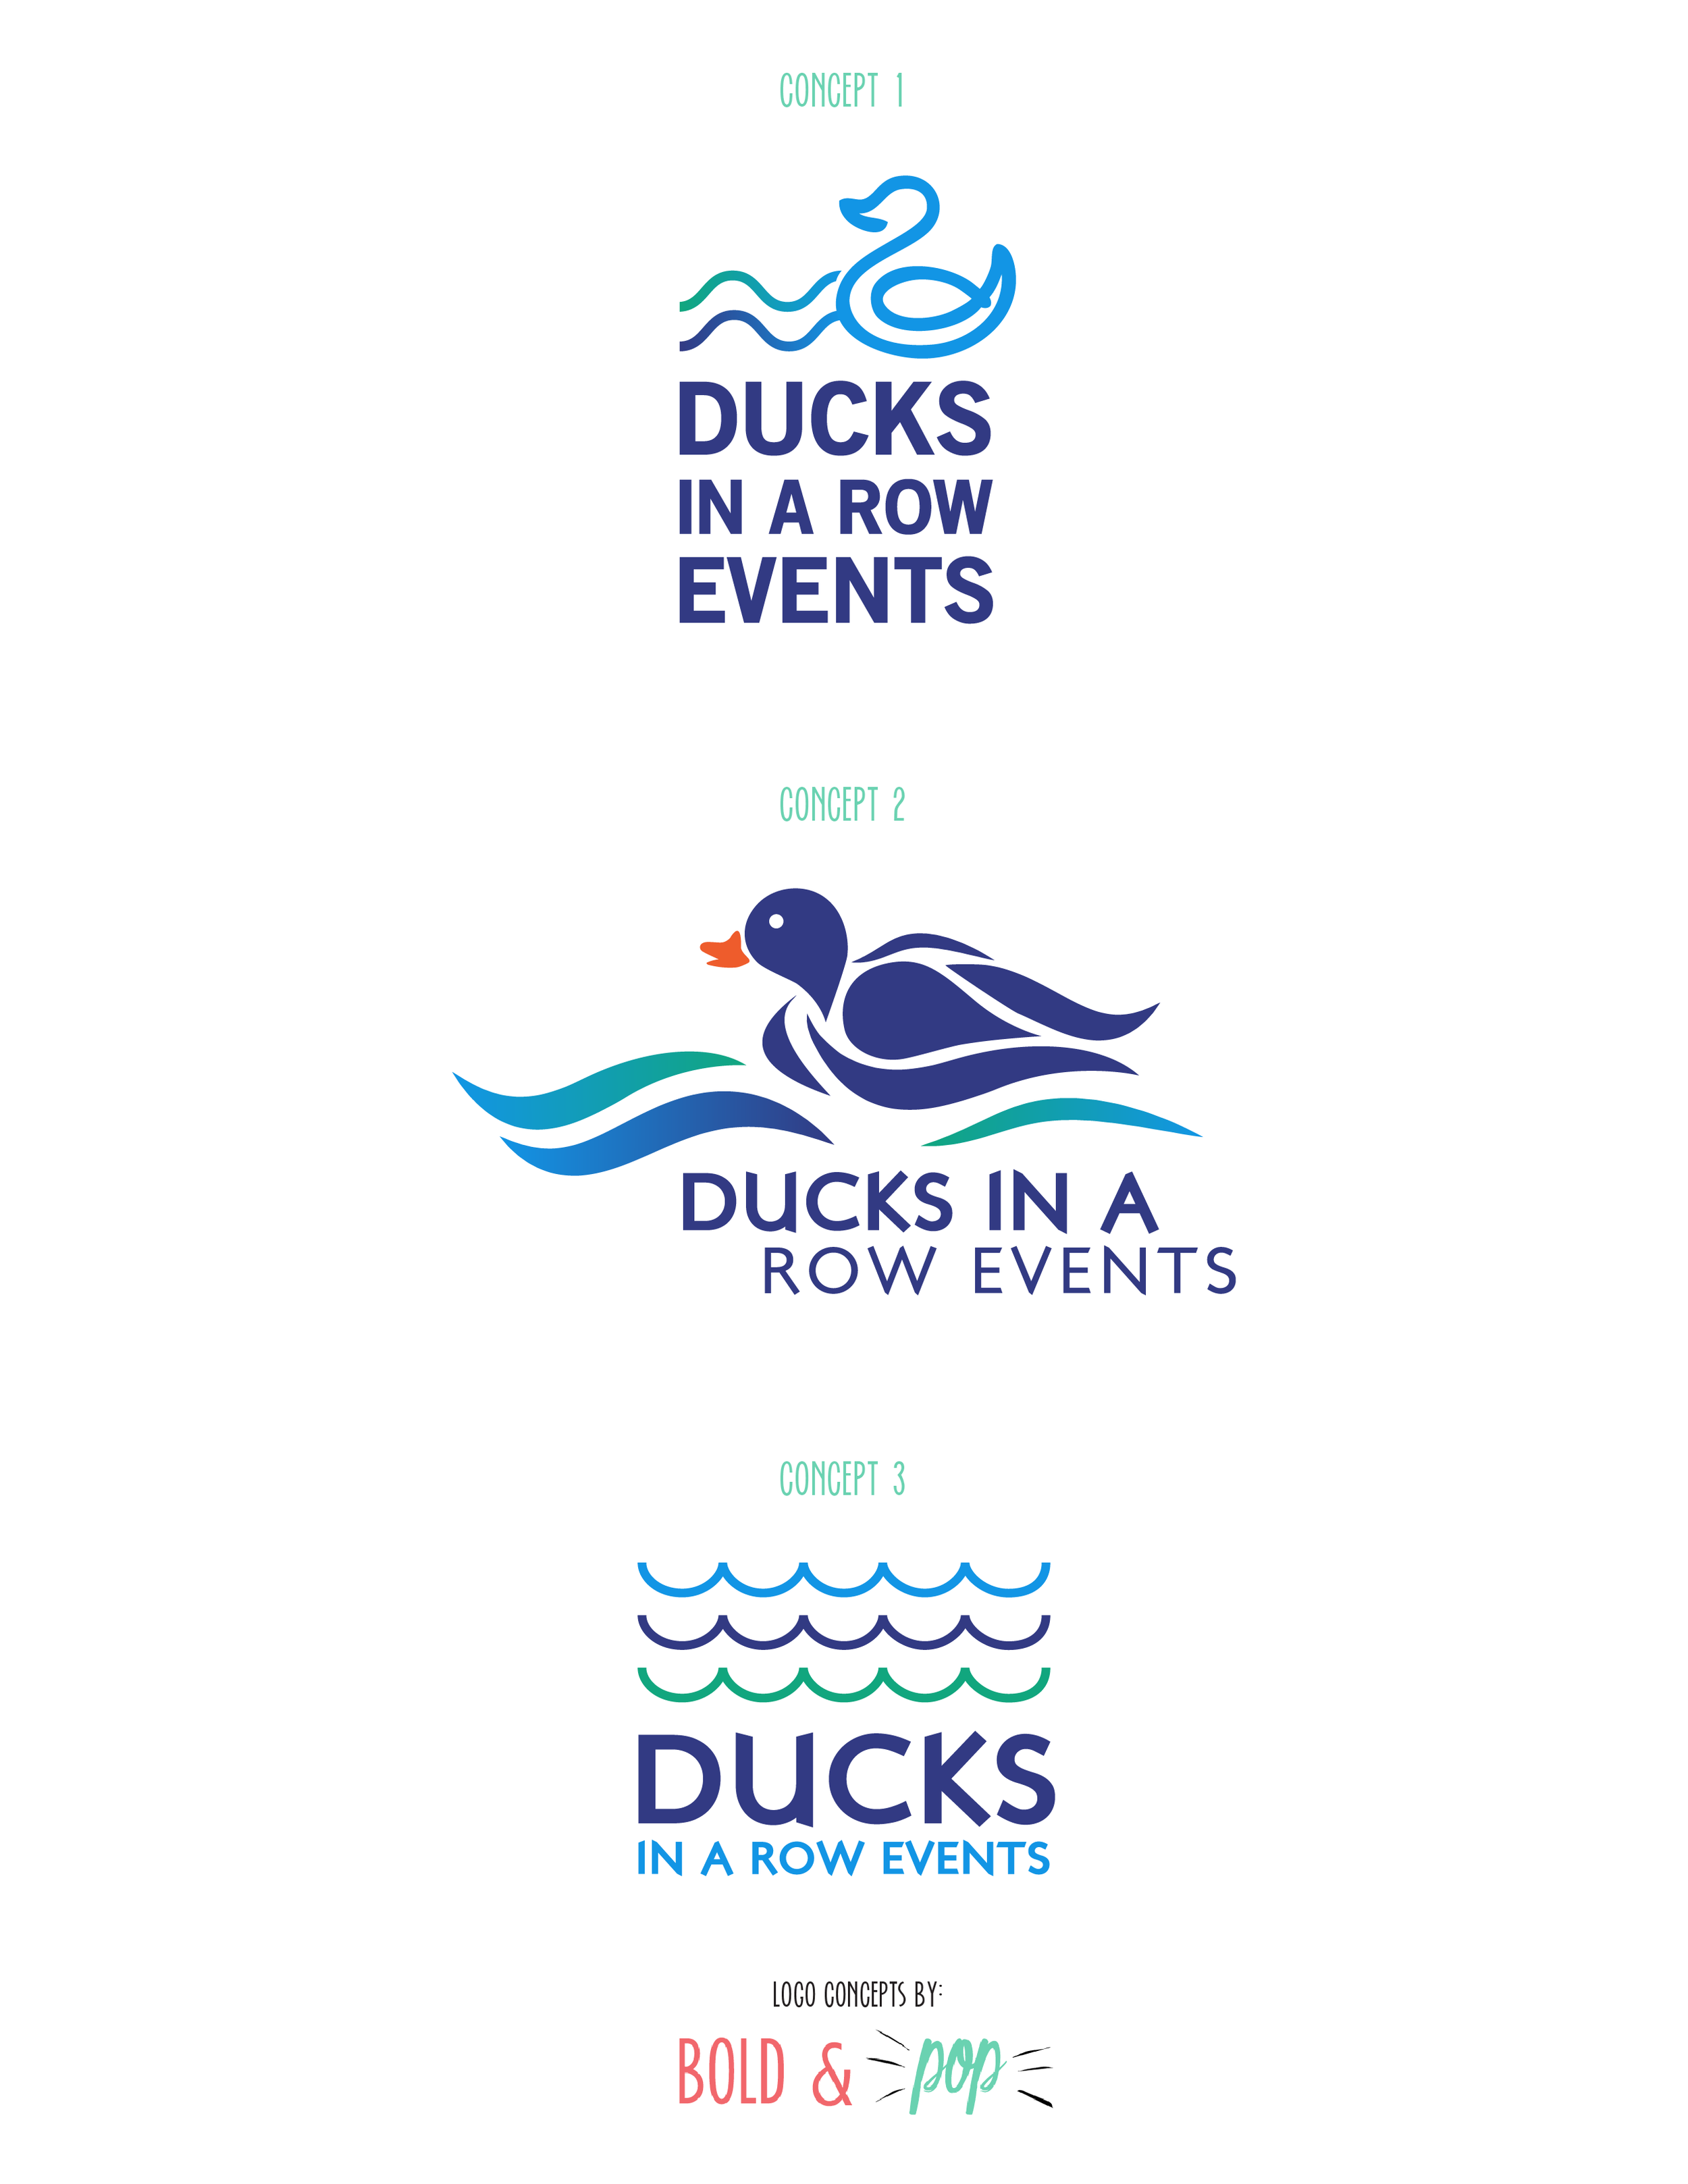 Bold & Pop : Ducks In A Row Events Logo Design